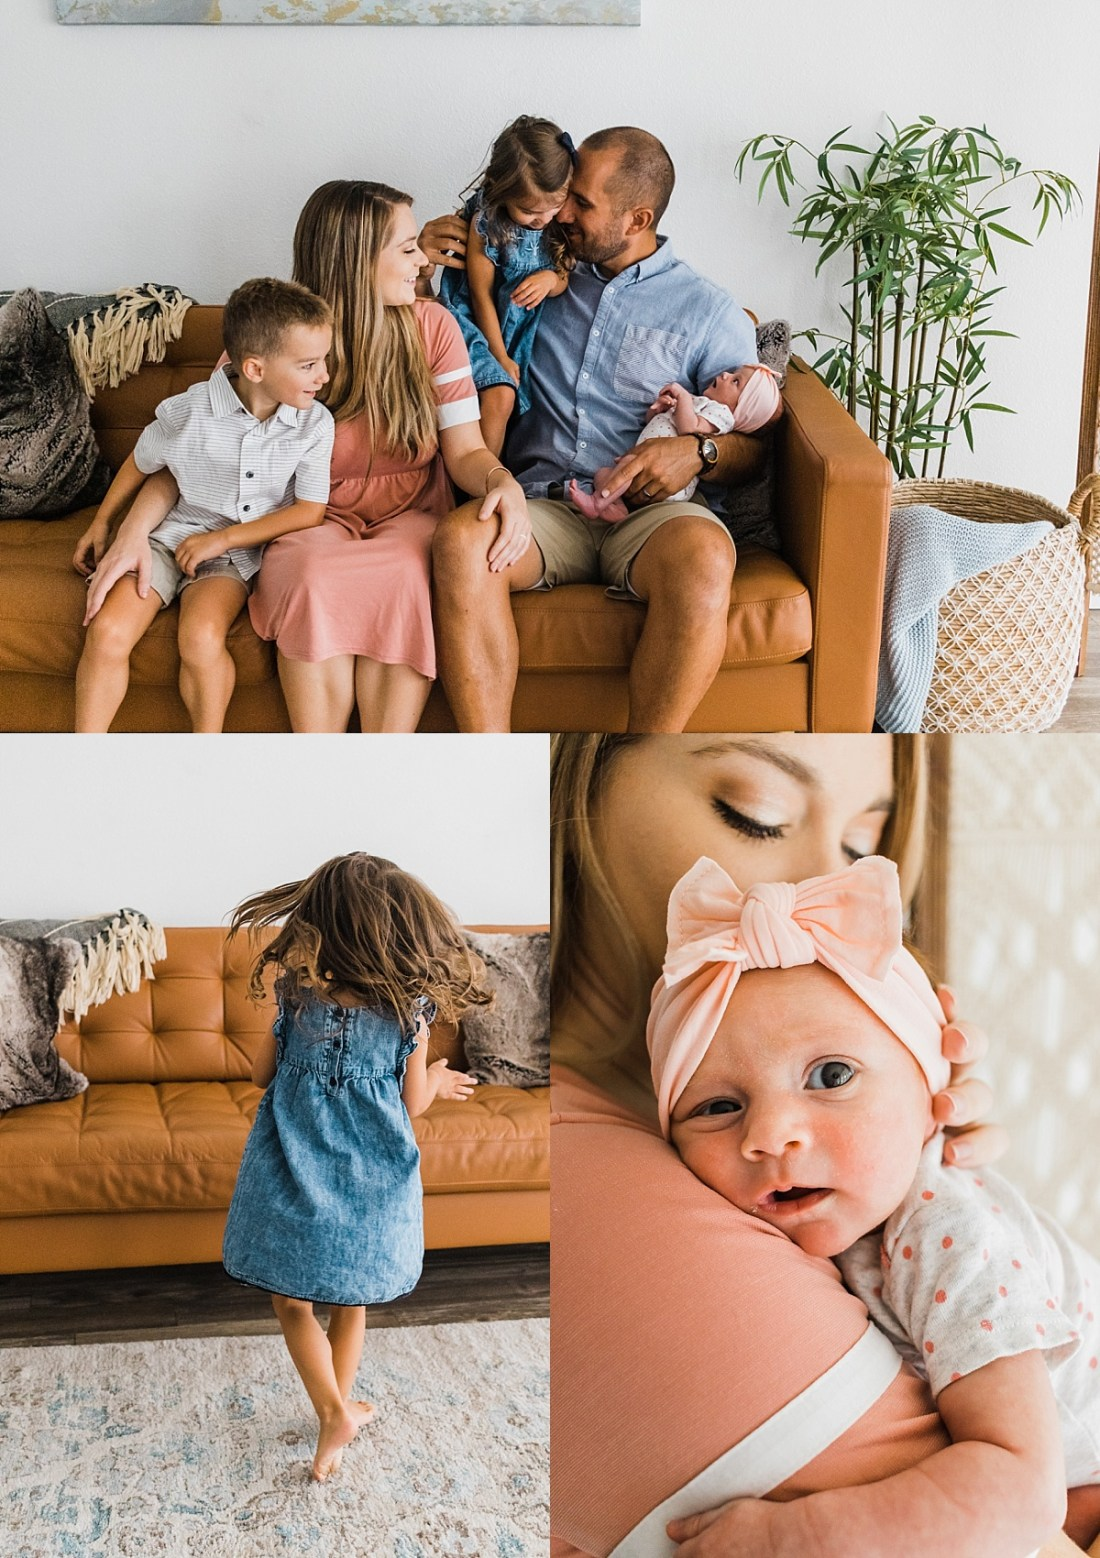 East Valley Newborn Photographer | Space One 2 One